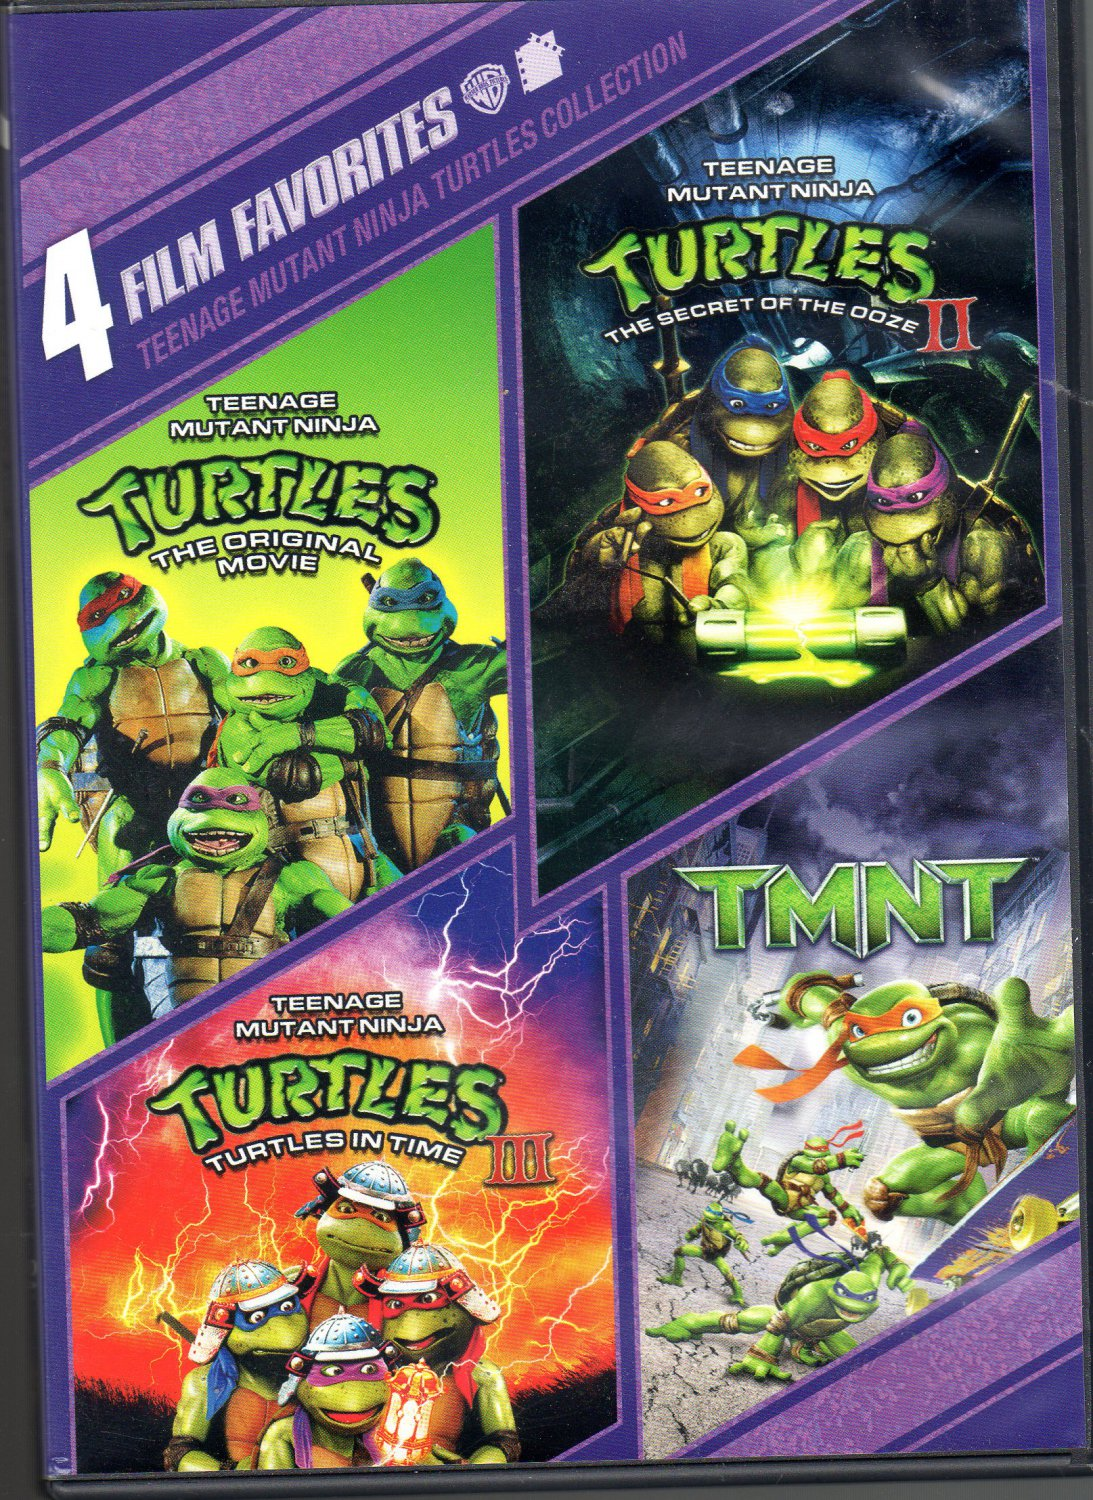 Teenage Mutant Ninja Turtles Collection: 4 Film Favorites [2 DVD